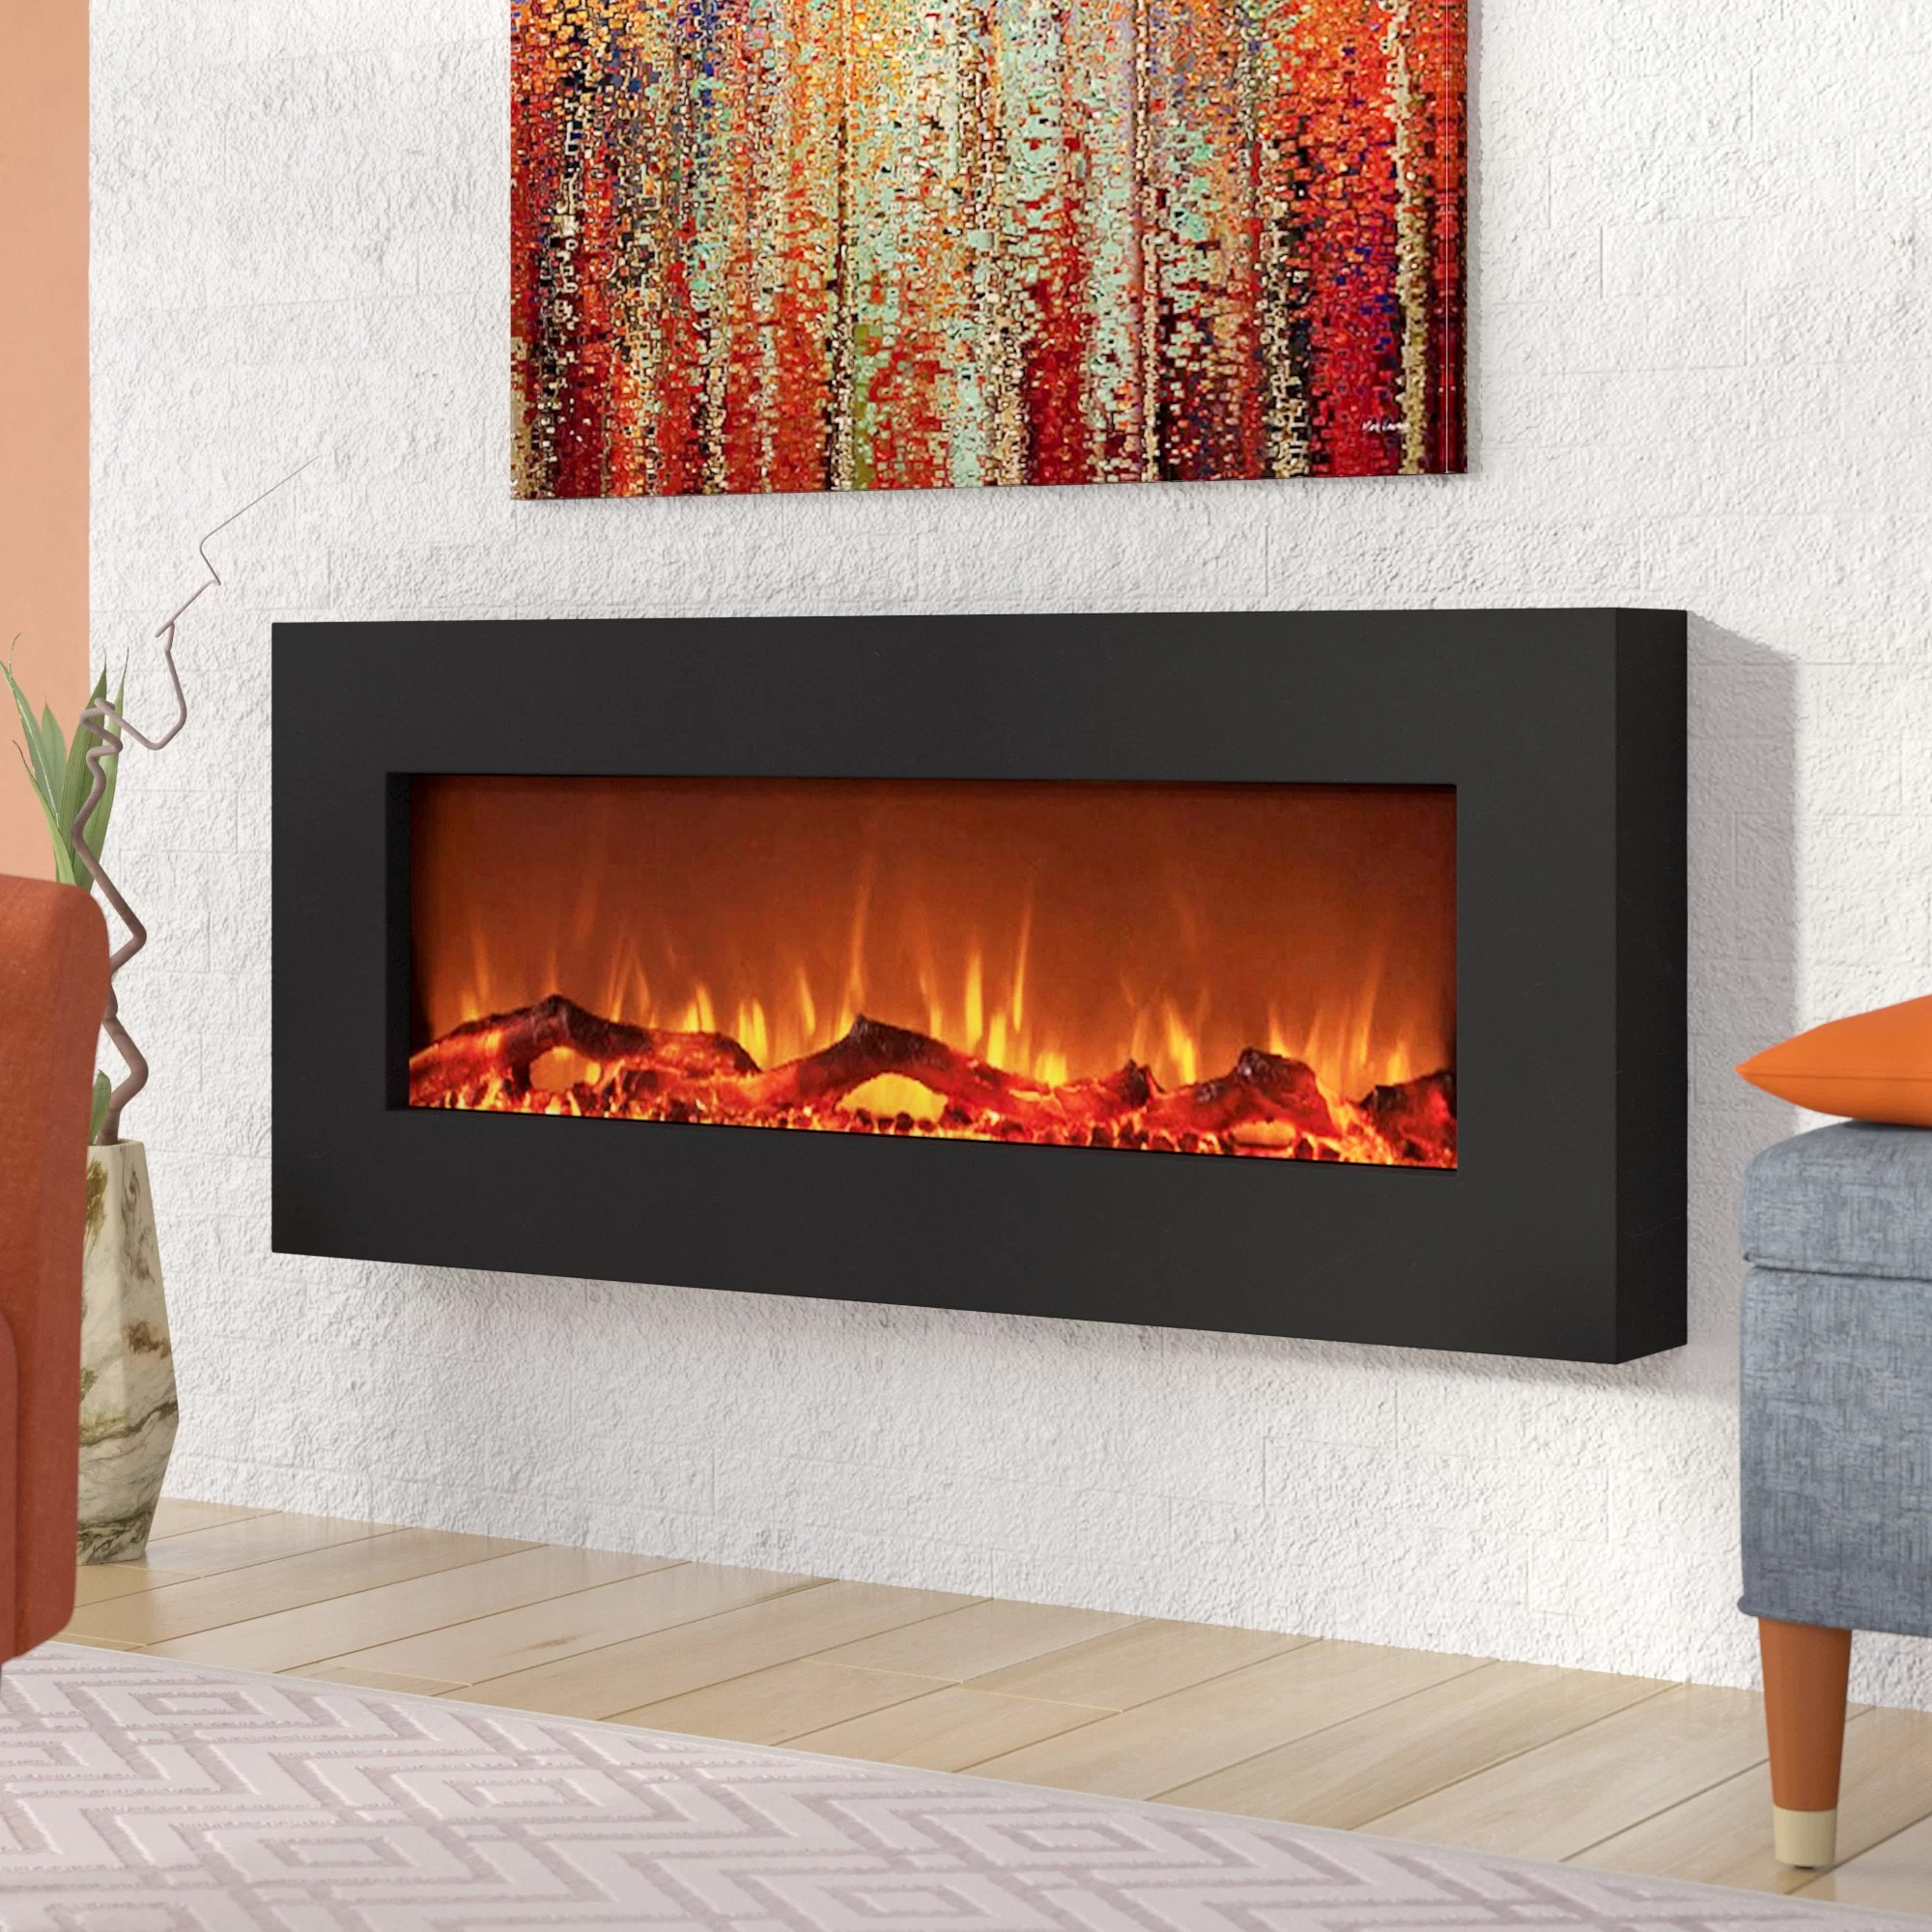 Wall Mount Fireplaces Krish Wall Mounted Electric Fireplace